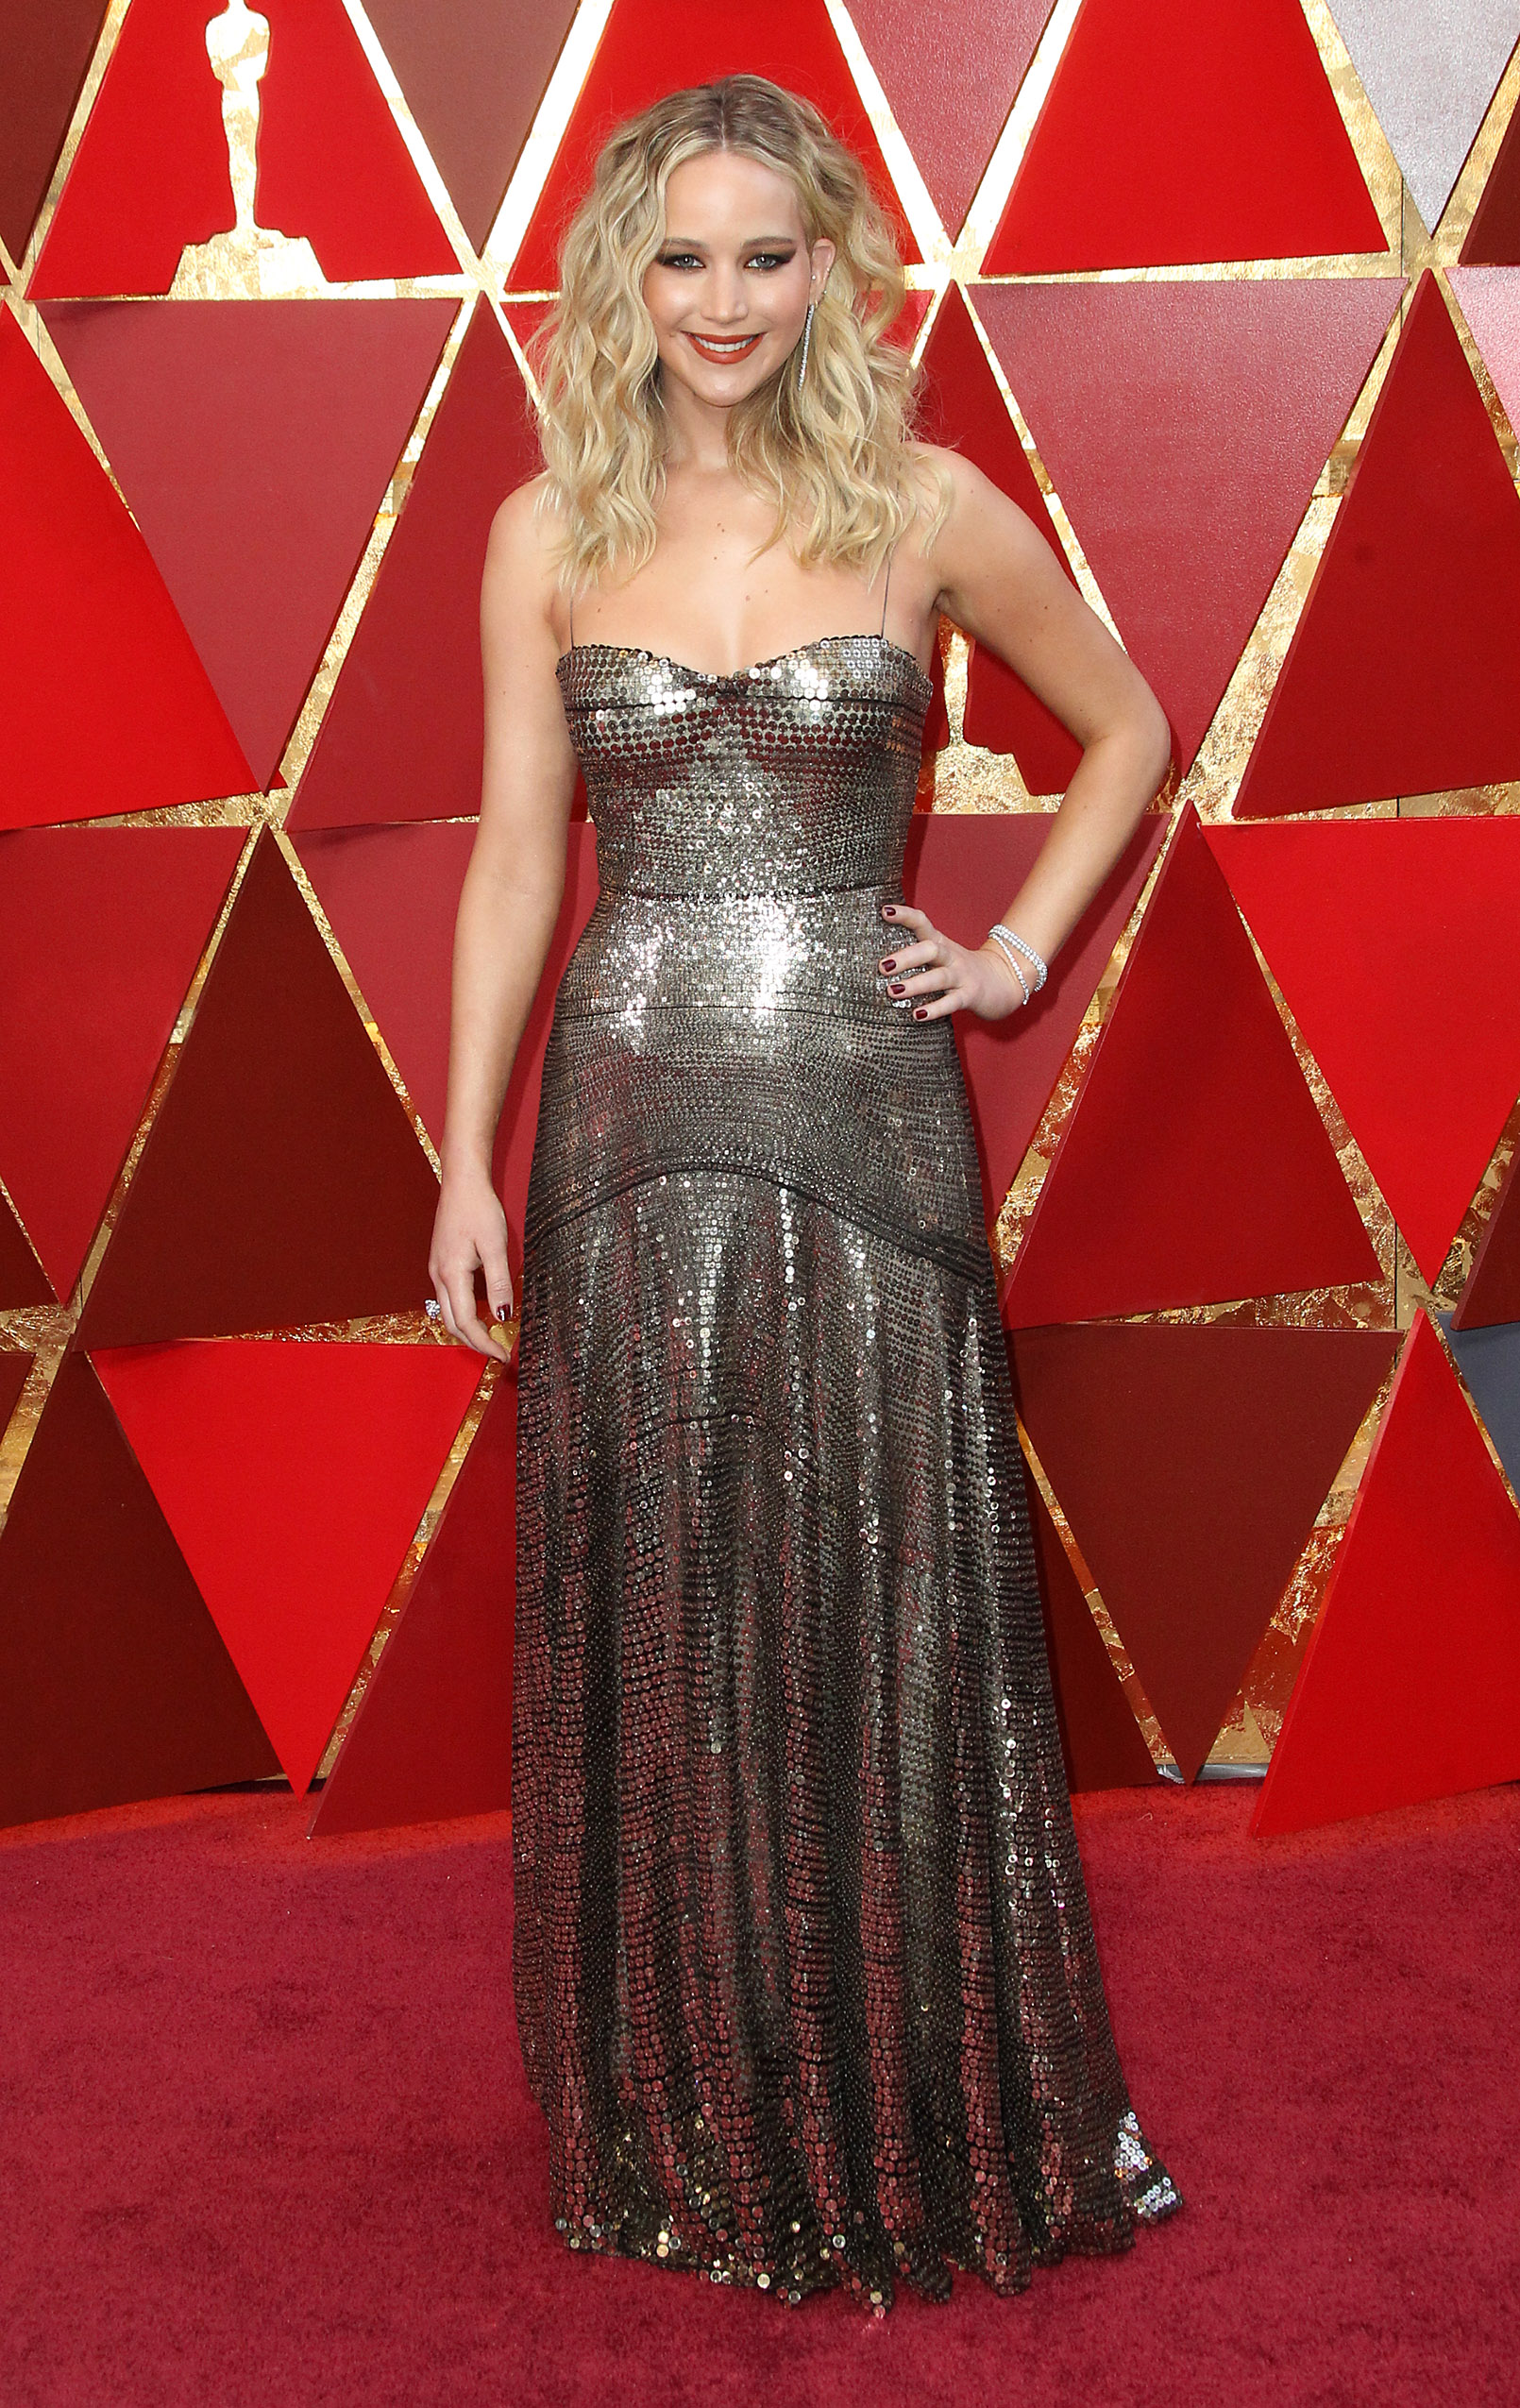 Jennifer Lawrence{&amp;nbsp;}arrives at the 90th Annual Academy Awards (Oscars) held at the Dolby Theater in Hollywood, California. (Image: Adriana M. Barraza/WENN.com)<p></p>